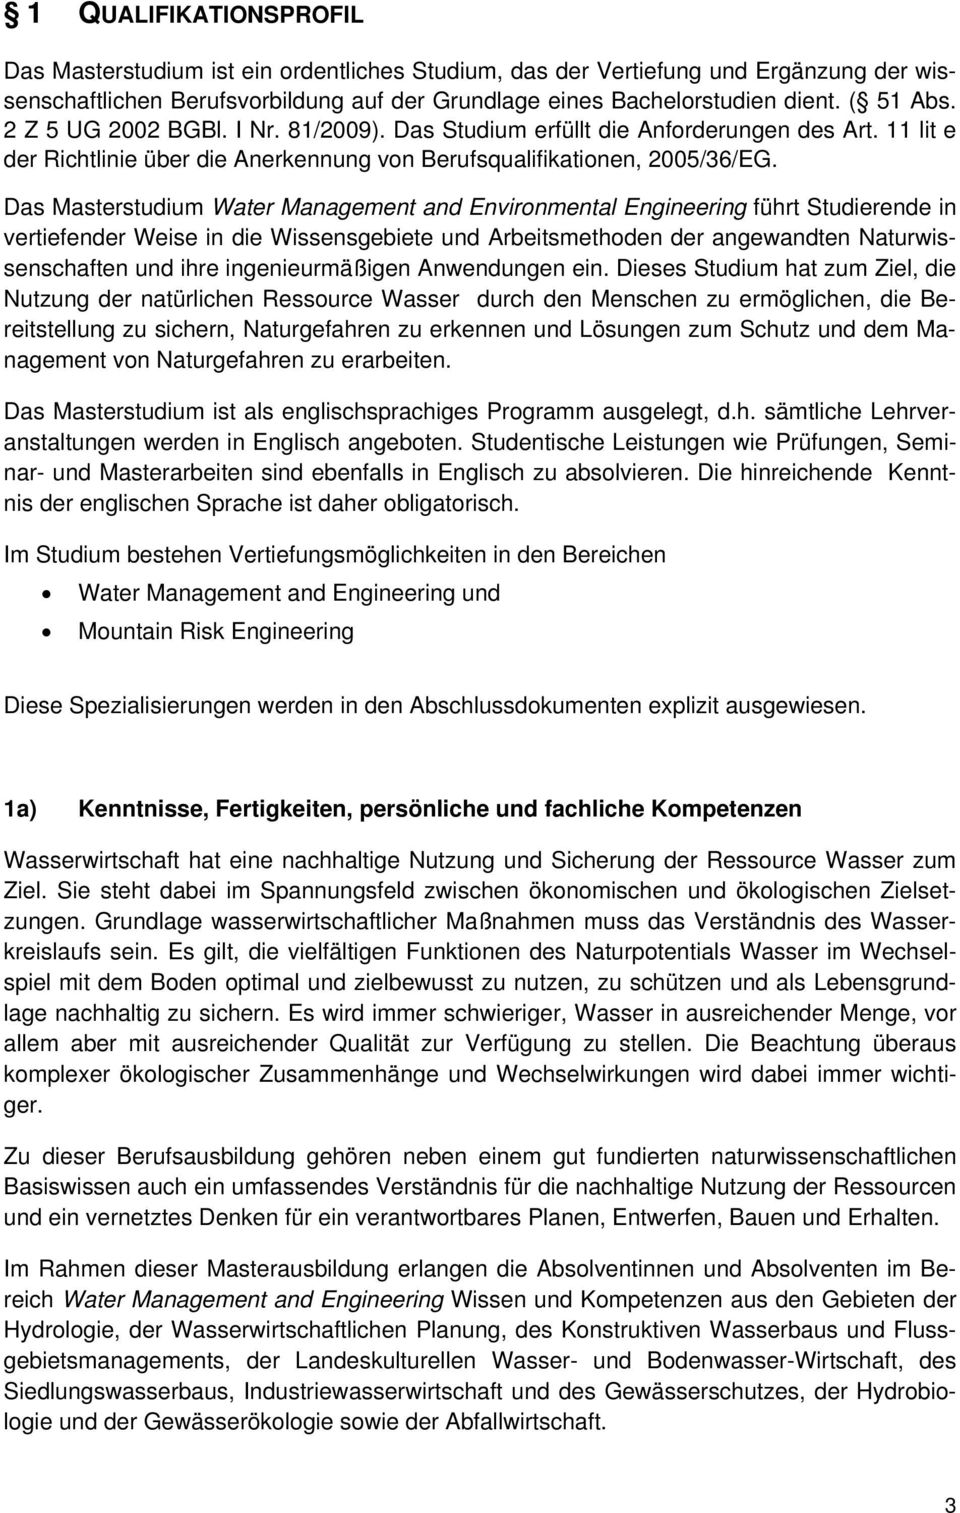 Das Masterstudium Water Management and Environmental Engineering führt Studierende in vertiefender Weise in die Wissensgebiete und Arbeitsmethoden der angewandten Naturwissenschaften und ihre